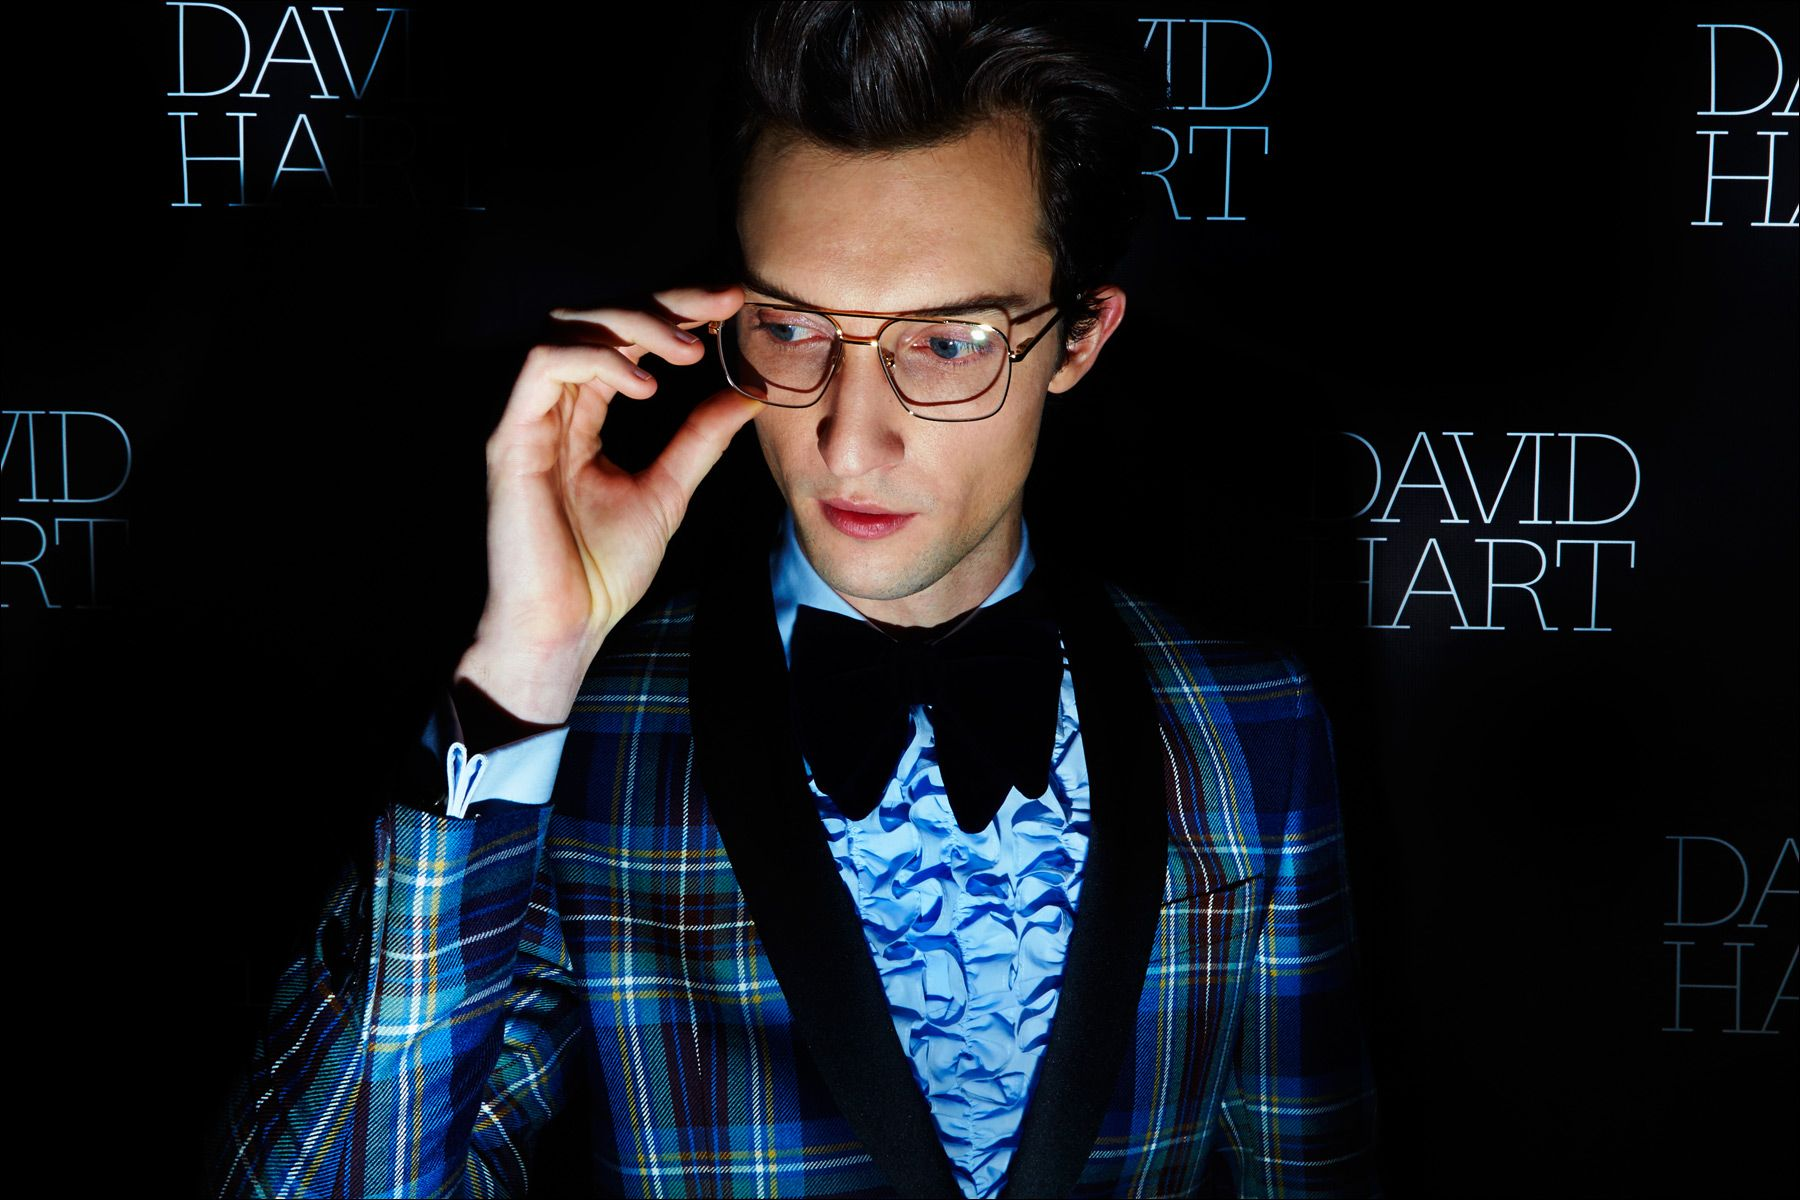 Model Max von Isser photographed on the David Hart red carpet presentation for Fall/Winter 2017. Photography by Alexander Thompson for Ponyboy magazine NY.